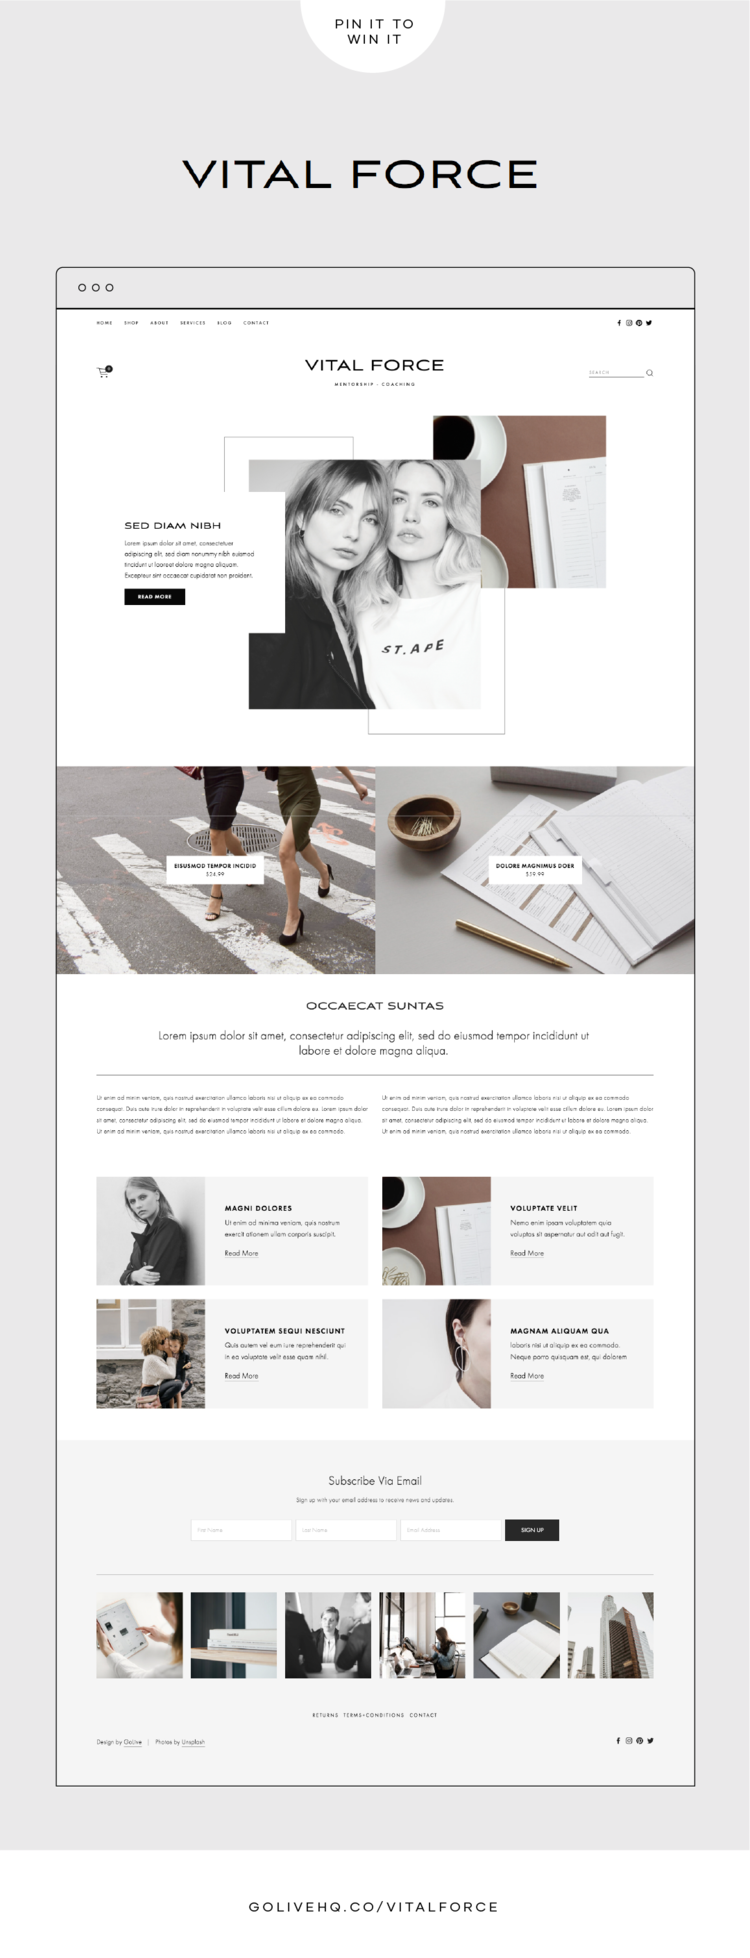 Modern,+Minimal+Squarespace+Website+Template+For+Small+Business+Owners+_+Design+By+GoLive.png